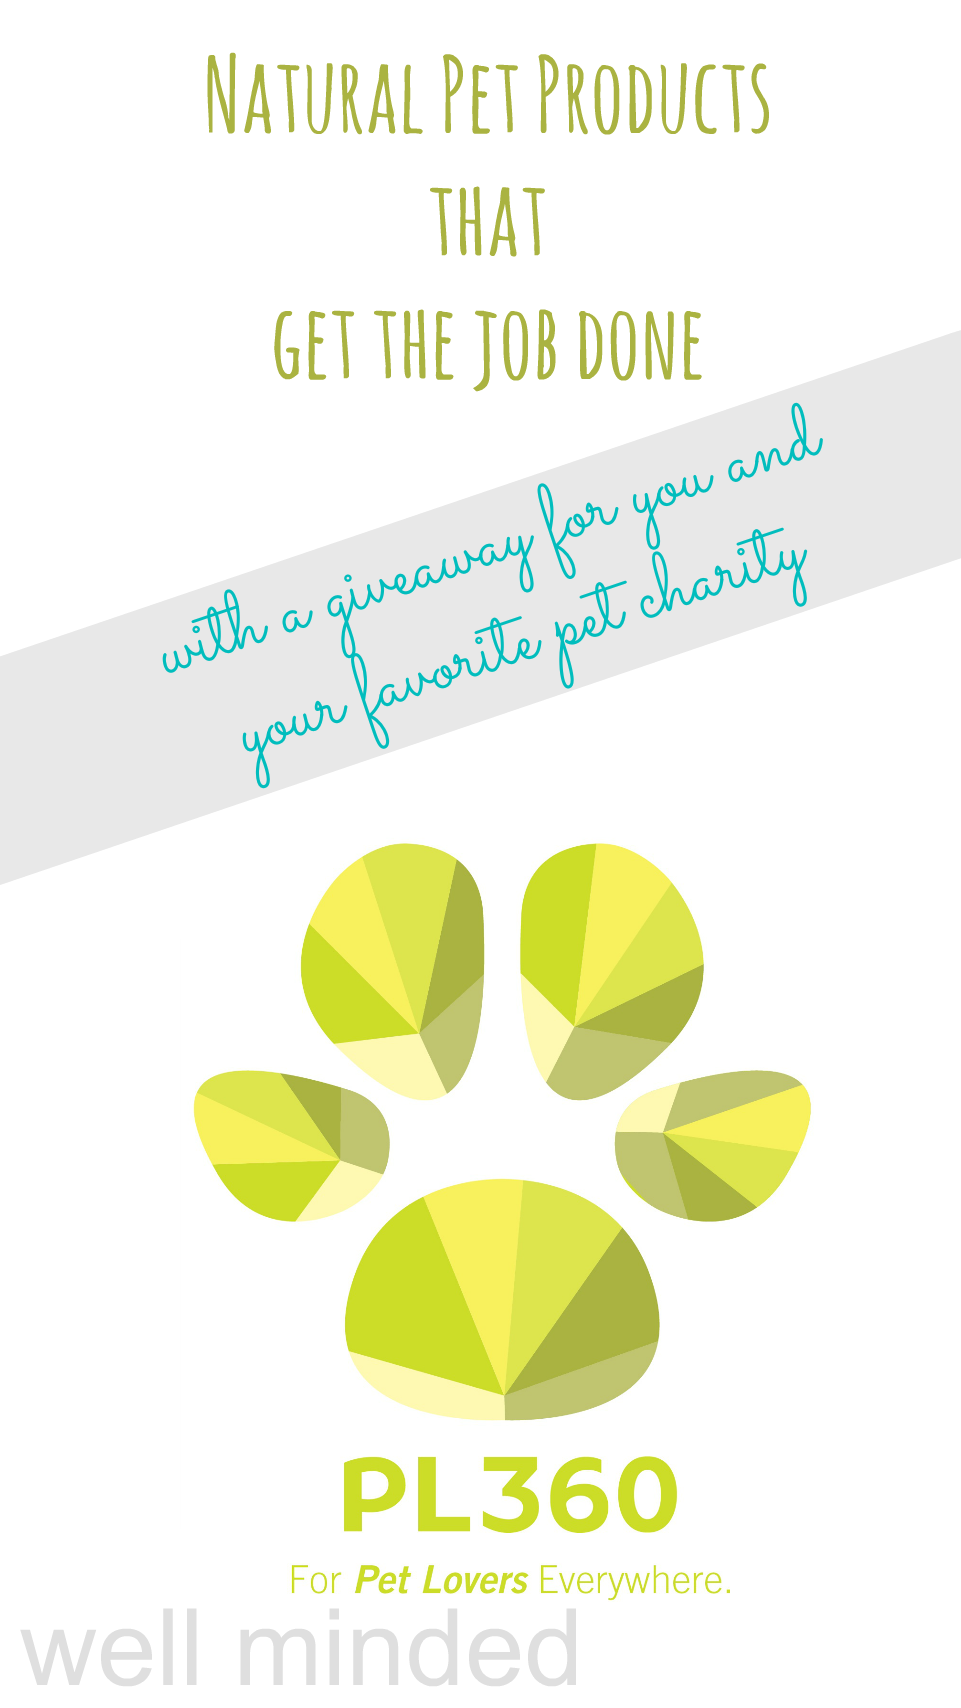 Natural pet products that get the job done from PL360 Pet. Plus, a giveaway for you and your favorite pet charity!